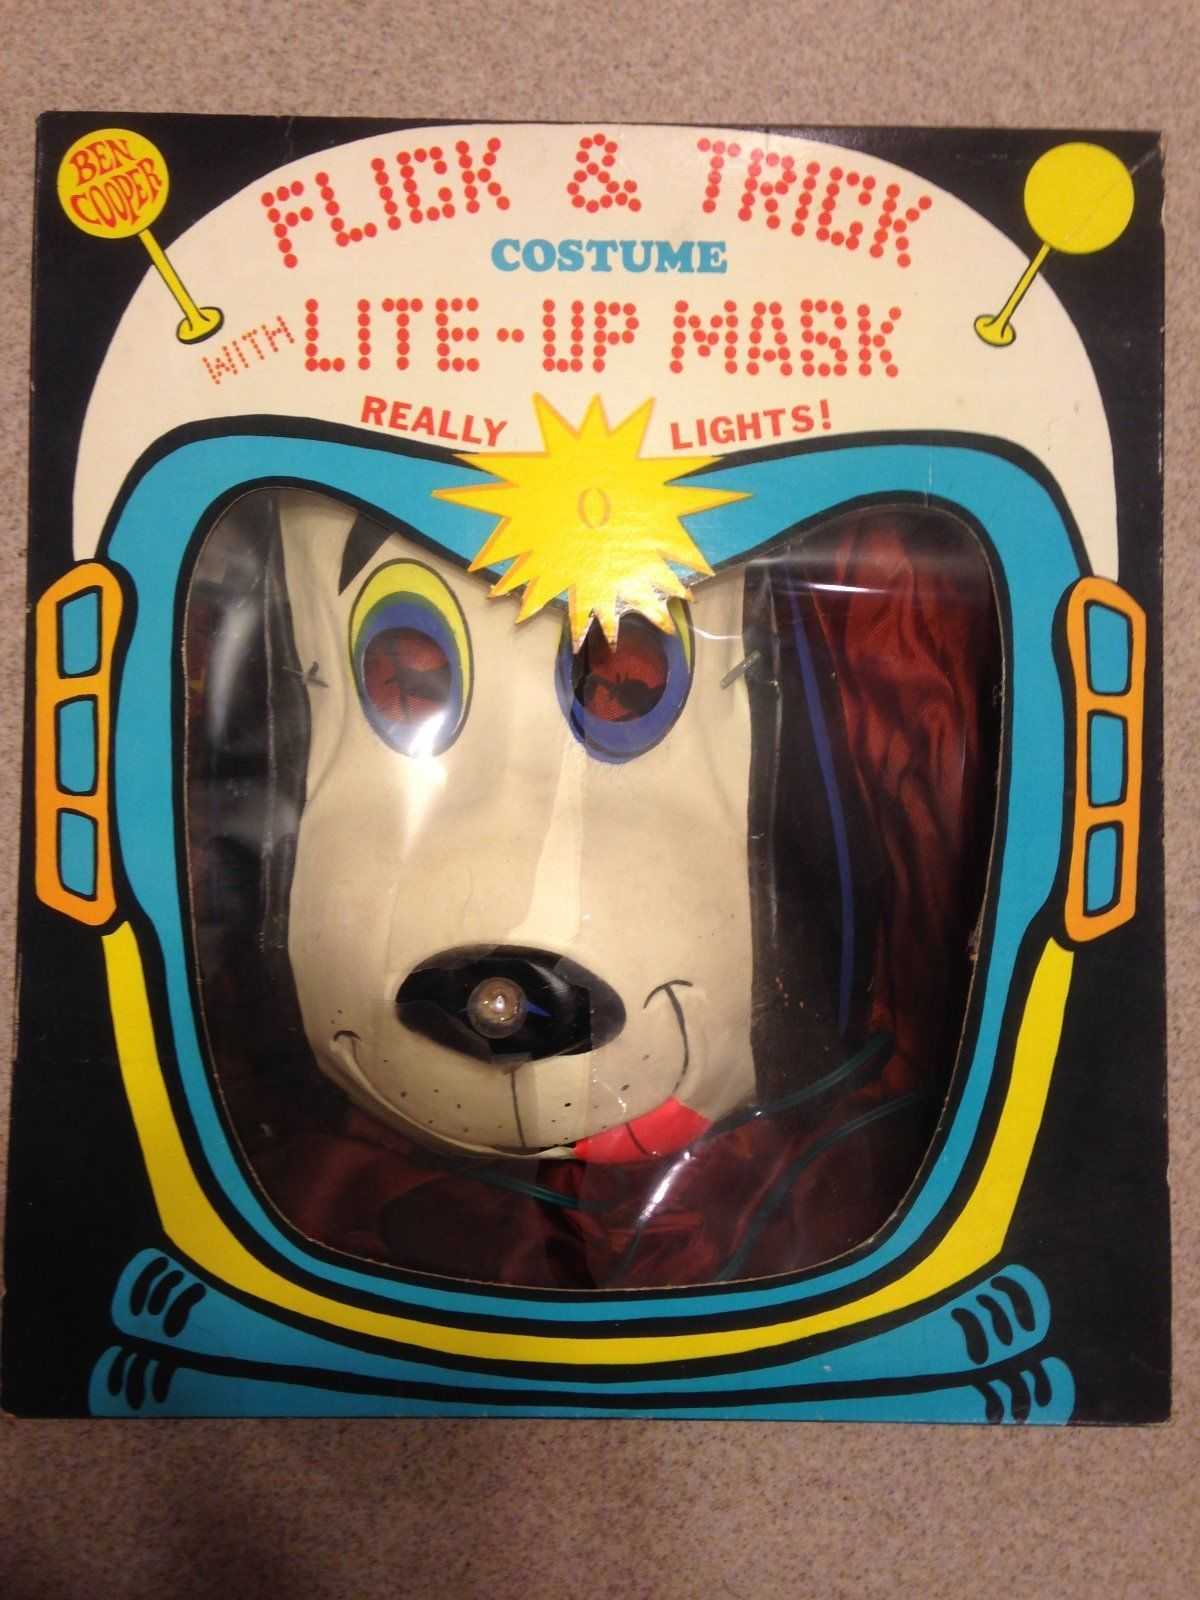 Vintage Halloween Costumes In A Box.Ben Cooper Vintage Halloween Costume Flashy The Pup In Box Lite Up